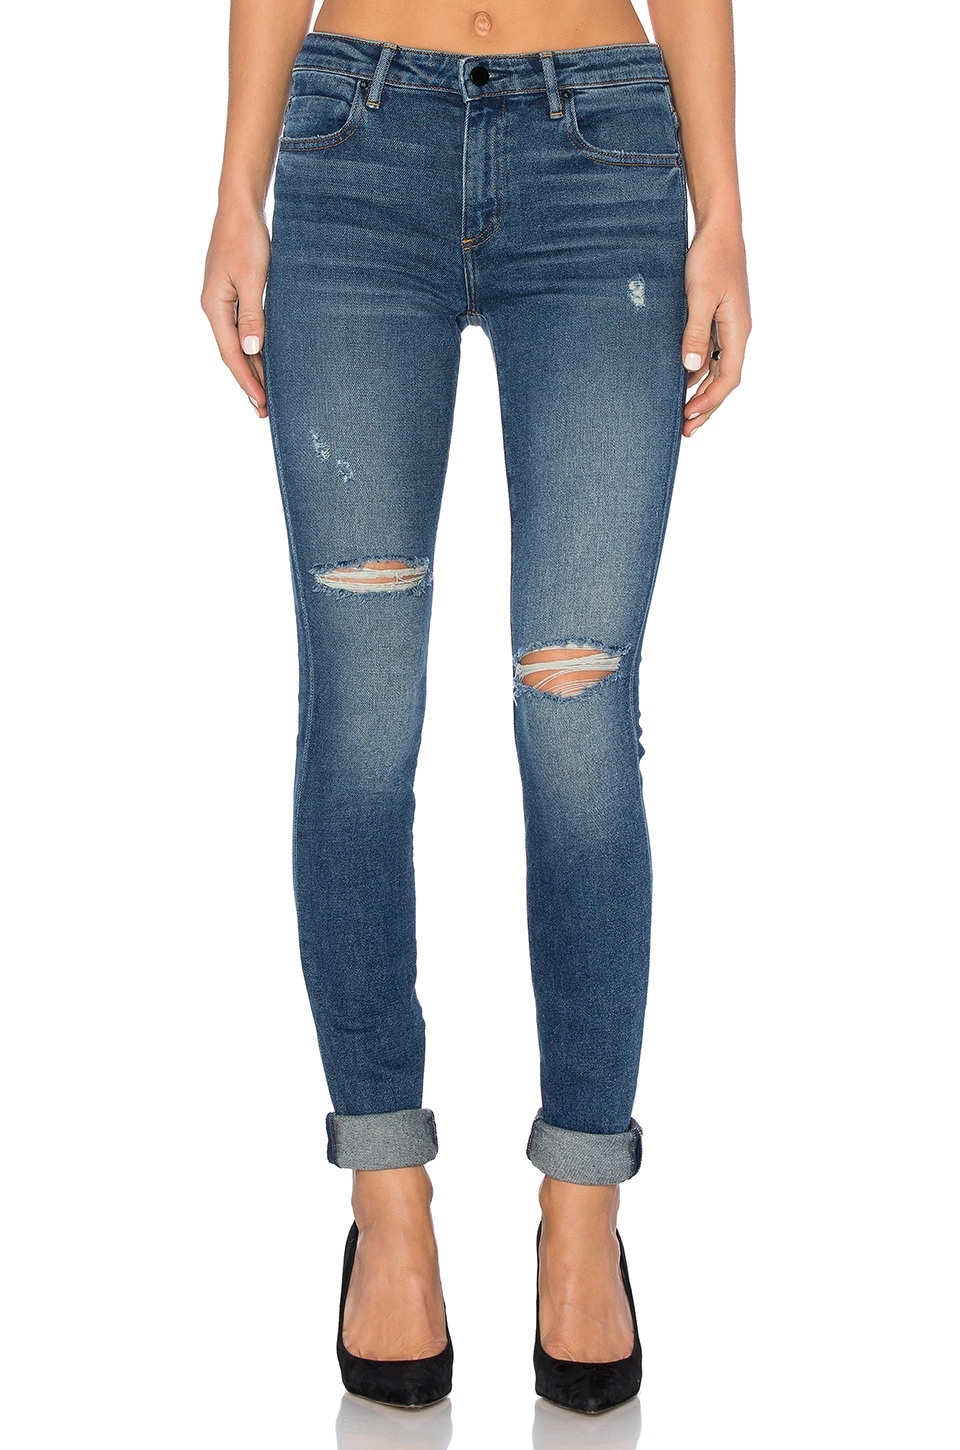 001 Relaxed Jean